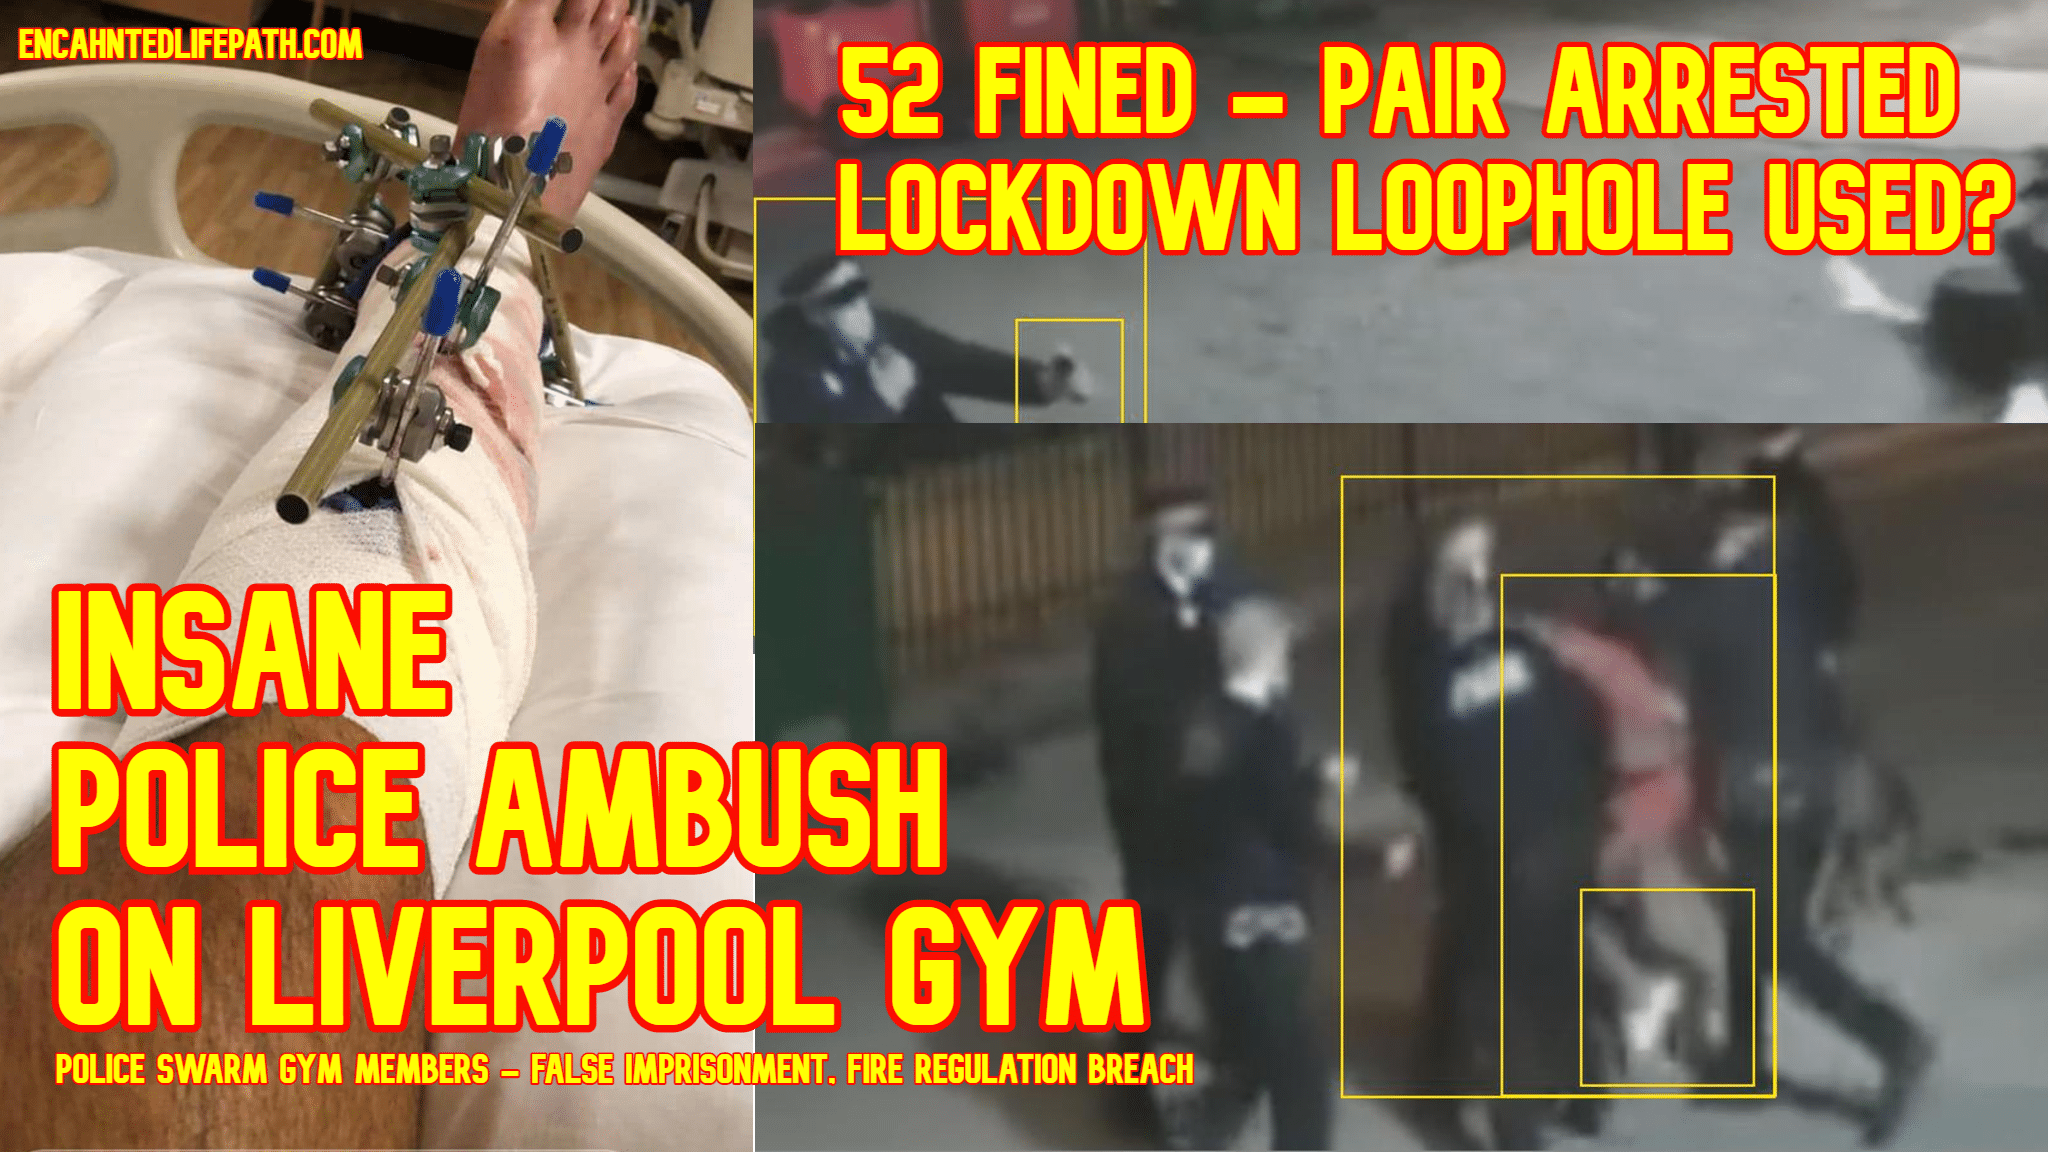 Liverpool gym arrests Insane Police Ambush On Liverpool Gym - 52 Fined - 2 Arrests - Police Brutality - False Imprisonment - Breach Of Fire Regulations